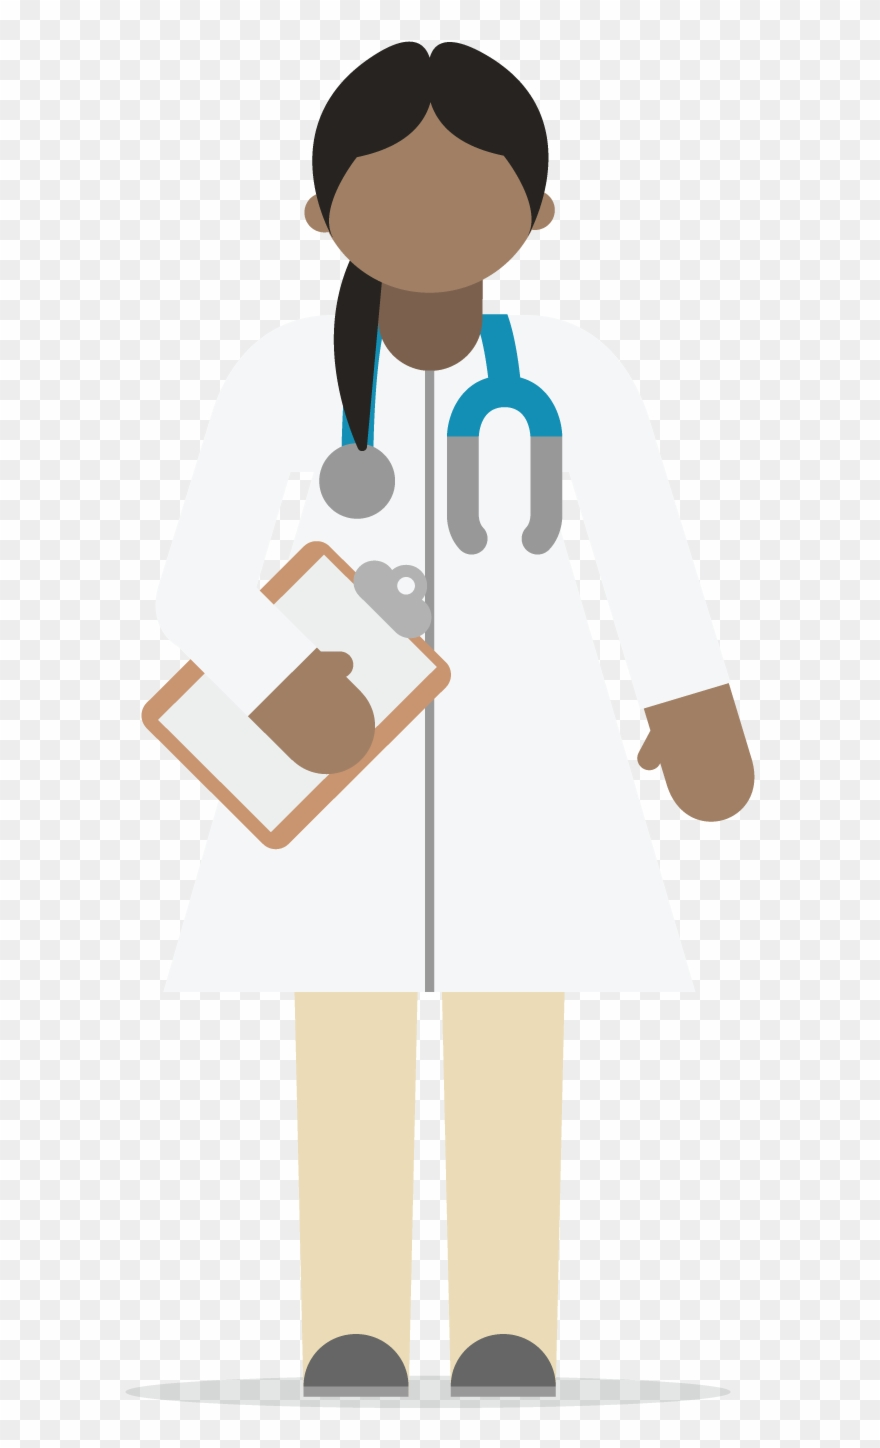 Clipart providers clipart freeuse stock Healthcare Providers - Illustration Clipart (#1550318) - PinClipart clipart freeuse stock